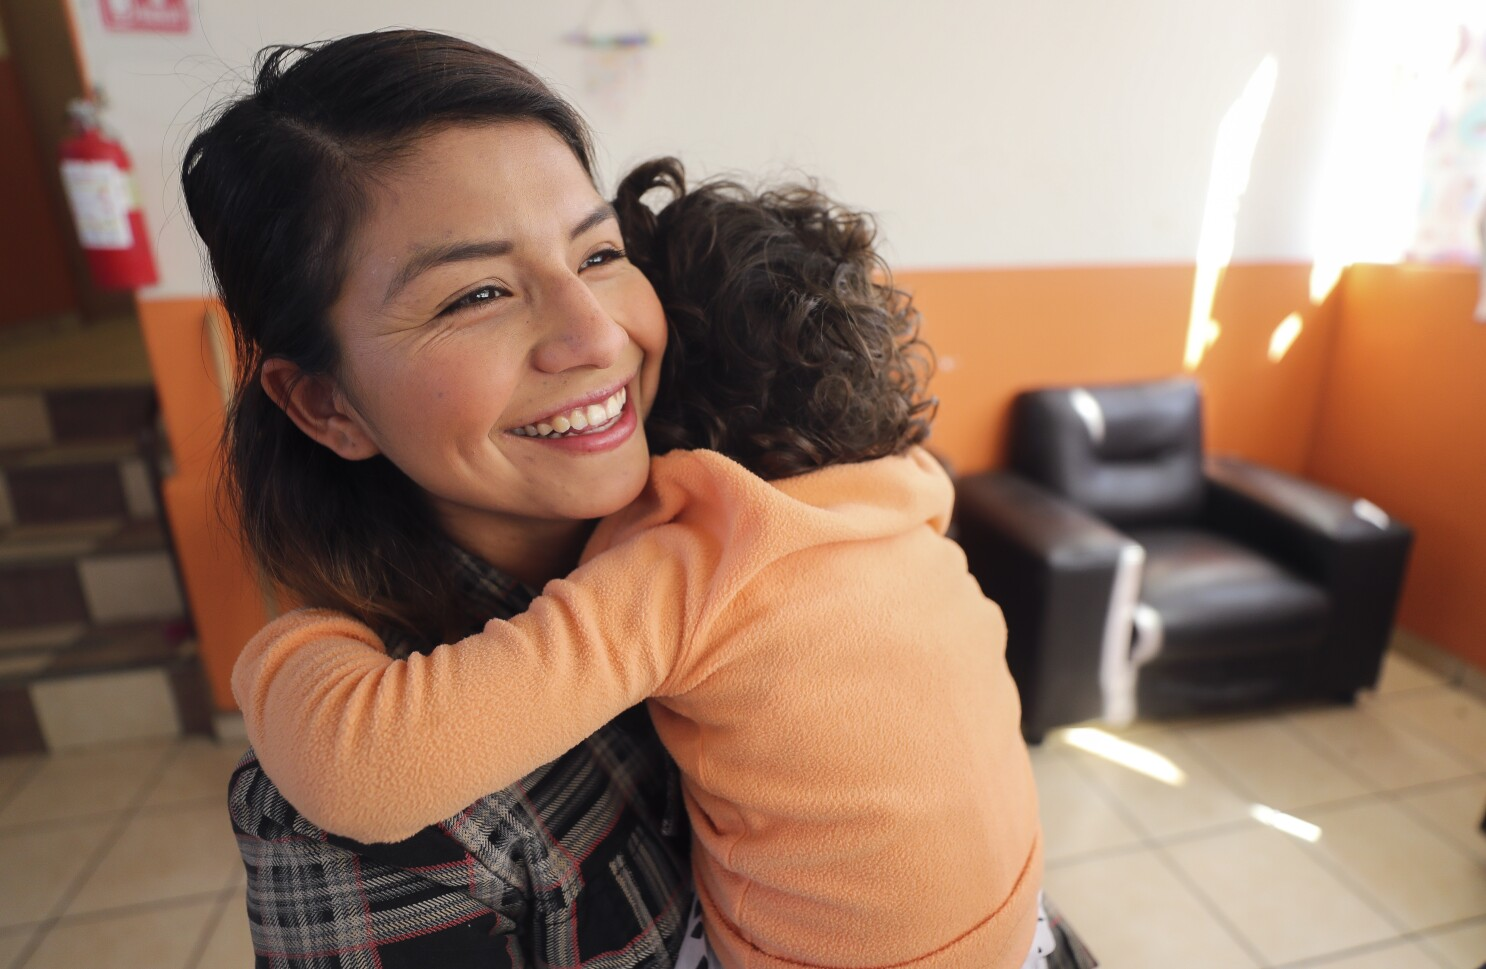 She grew up in a Mexican orphanage, now her nonprofit has raised millions to help others like her